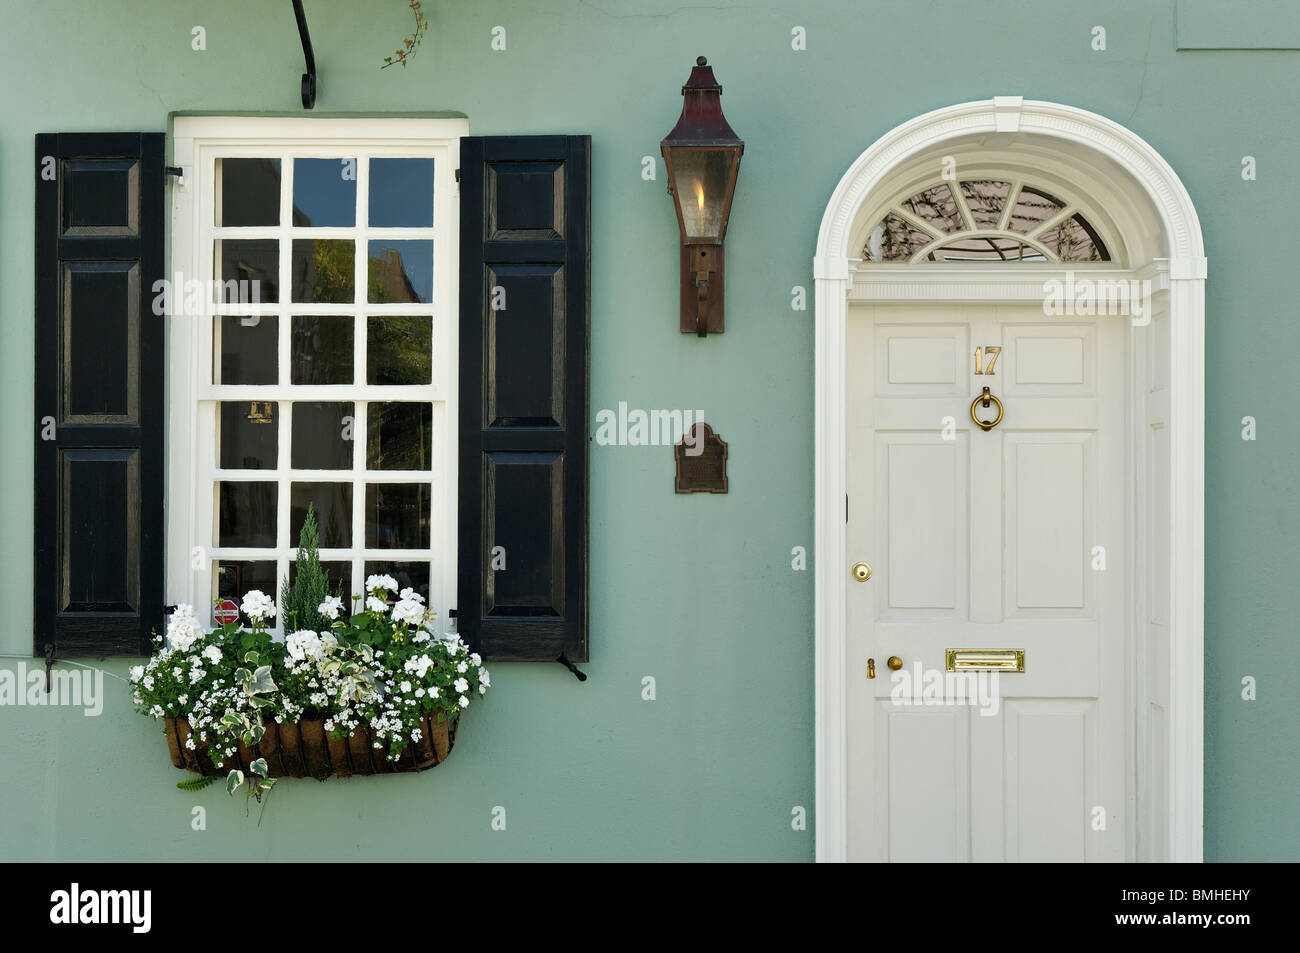 Detail Of Door And Window Of The Historic Charles Warham Home In  Charleston, South Carolina